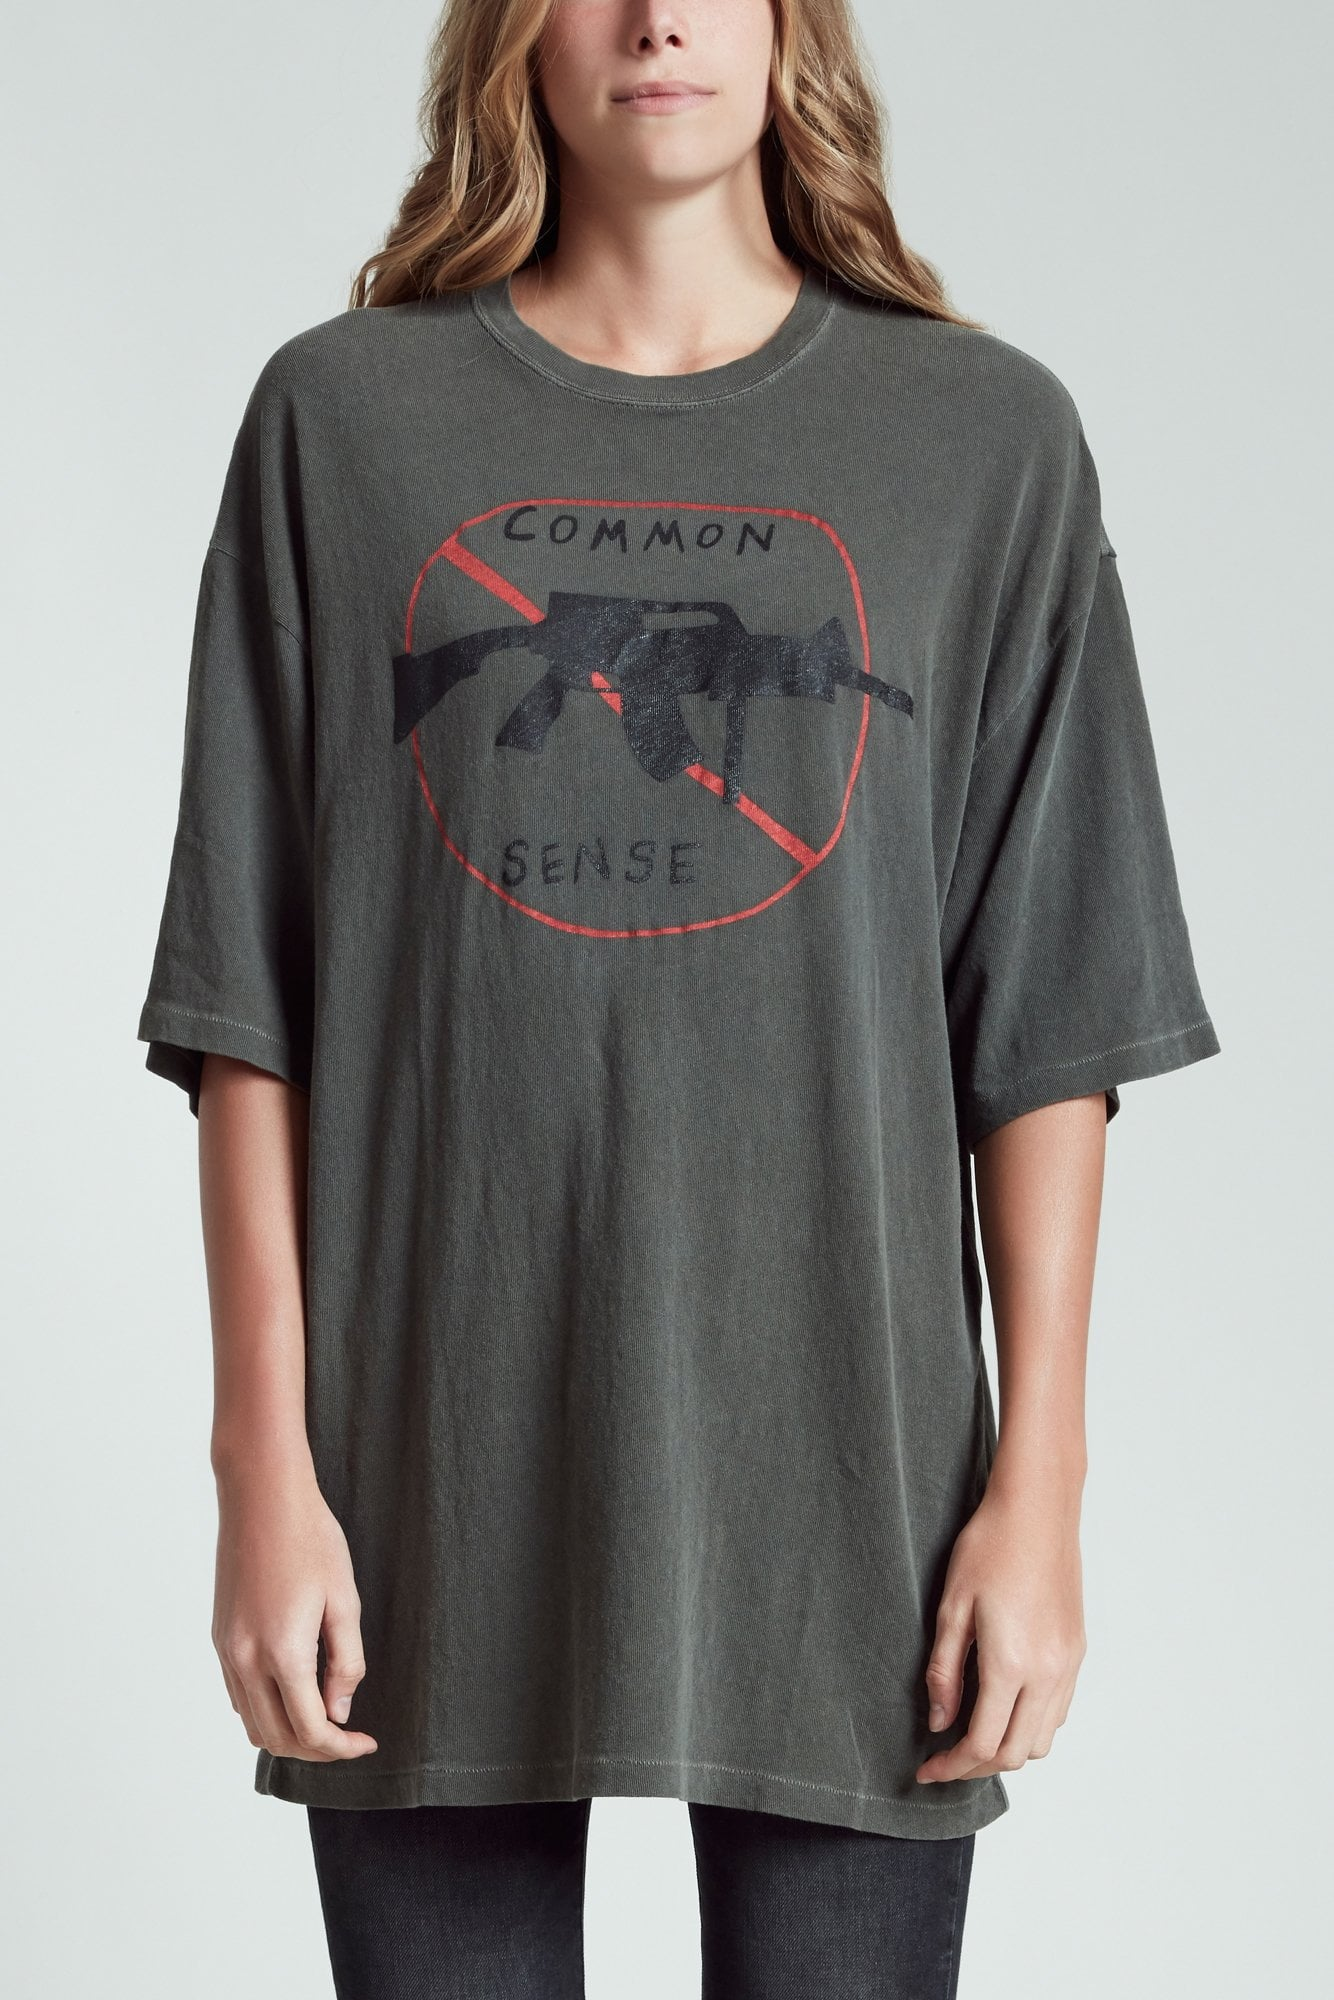 No Guns Oversized T - Faded Grey